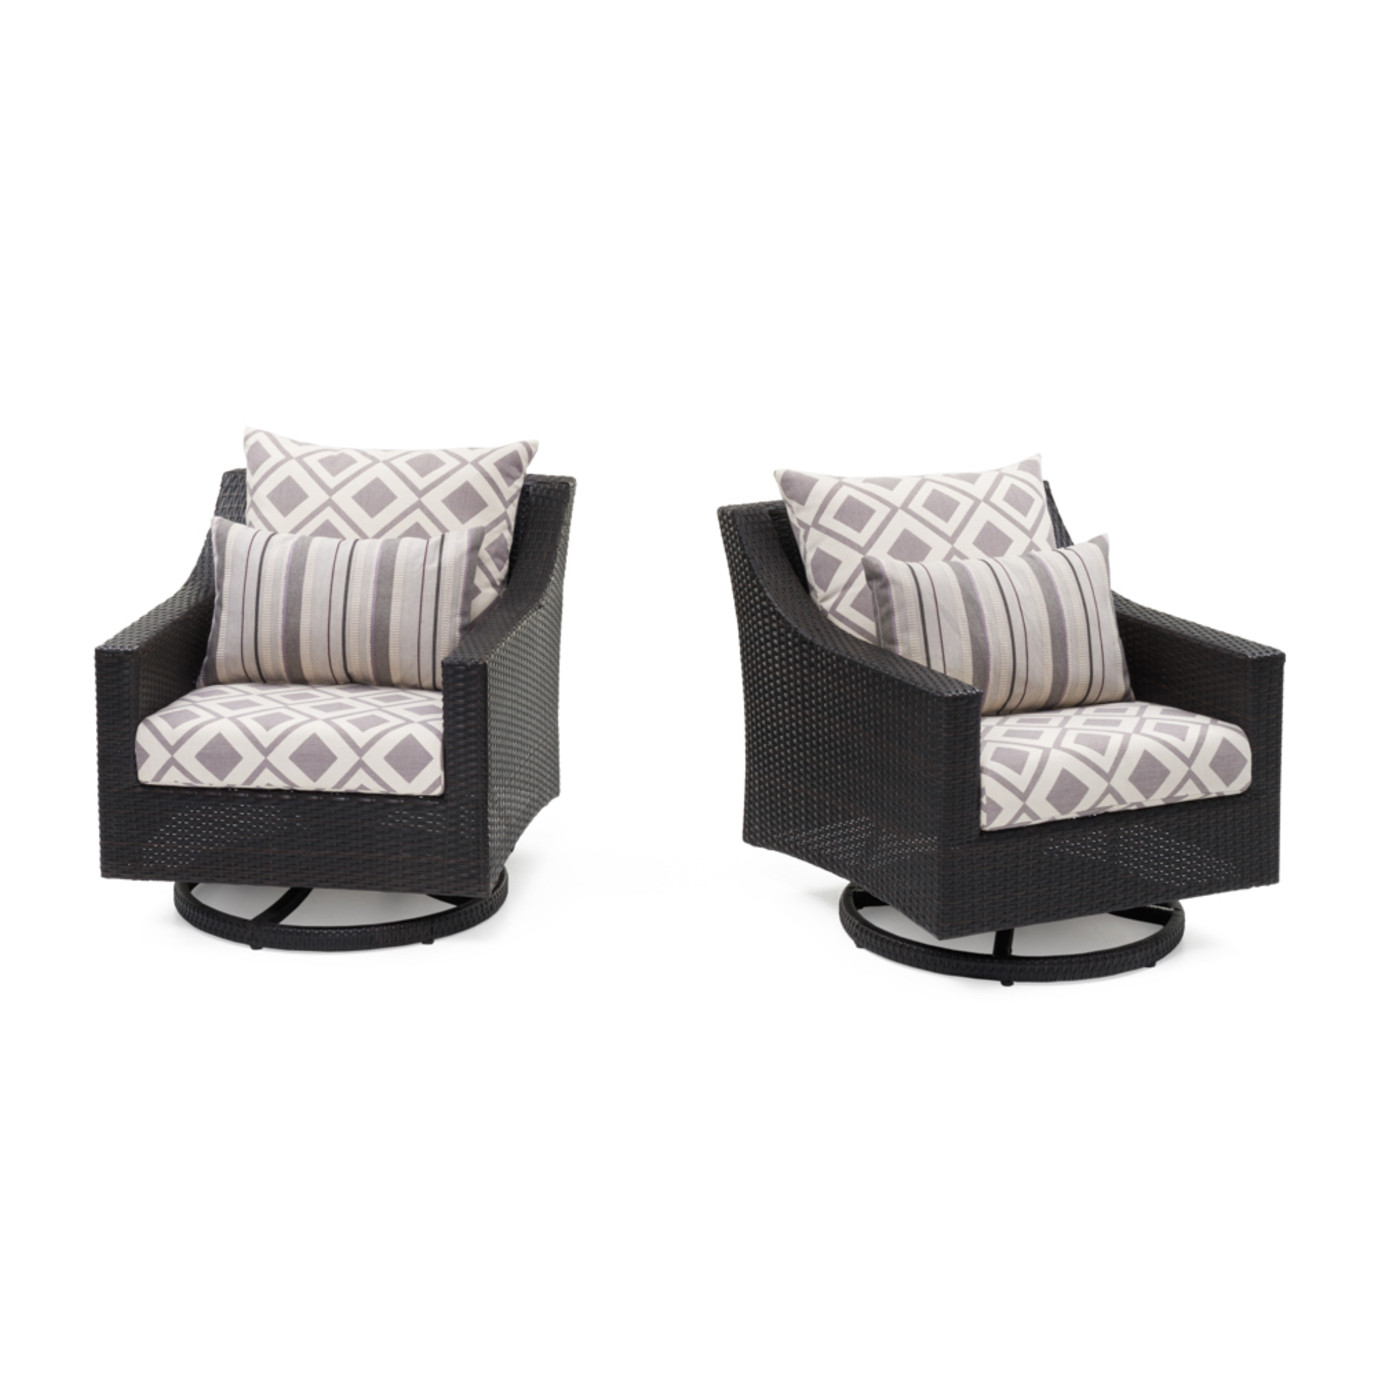 Deco™ Motion Club Chairs - Wisteria Lavender